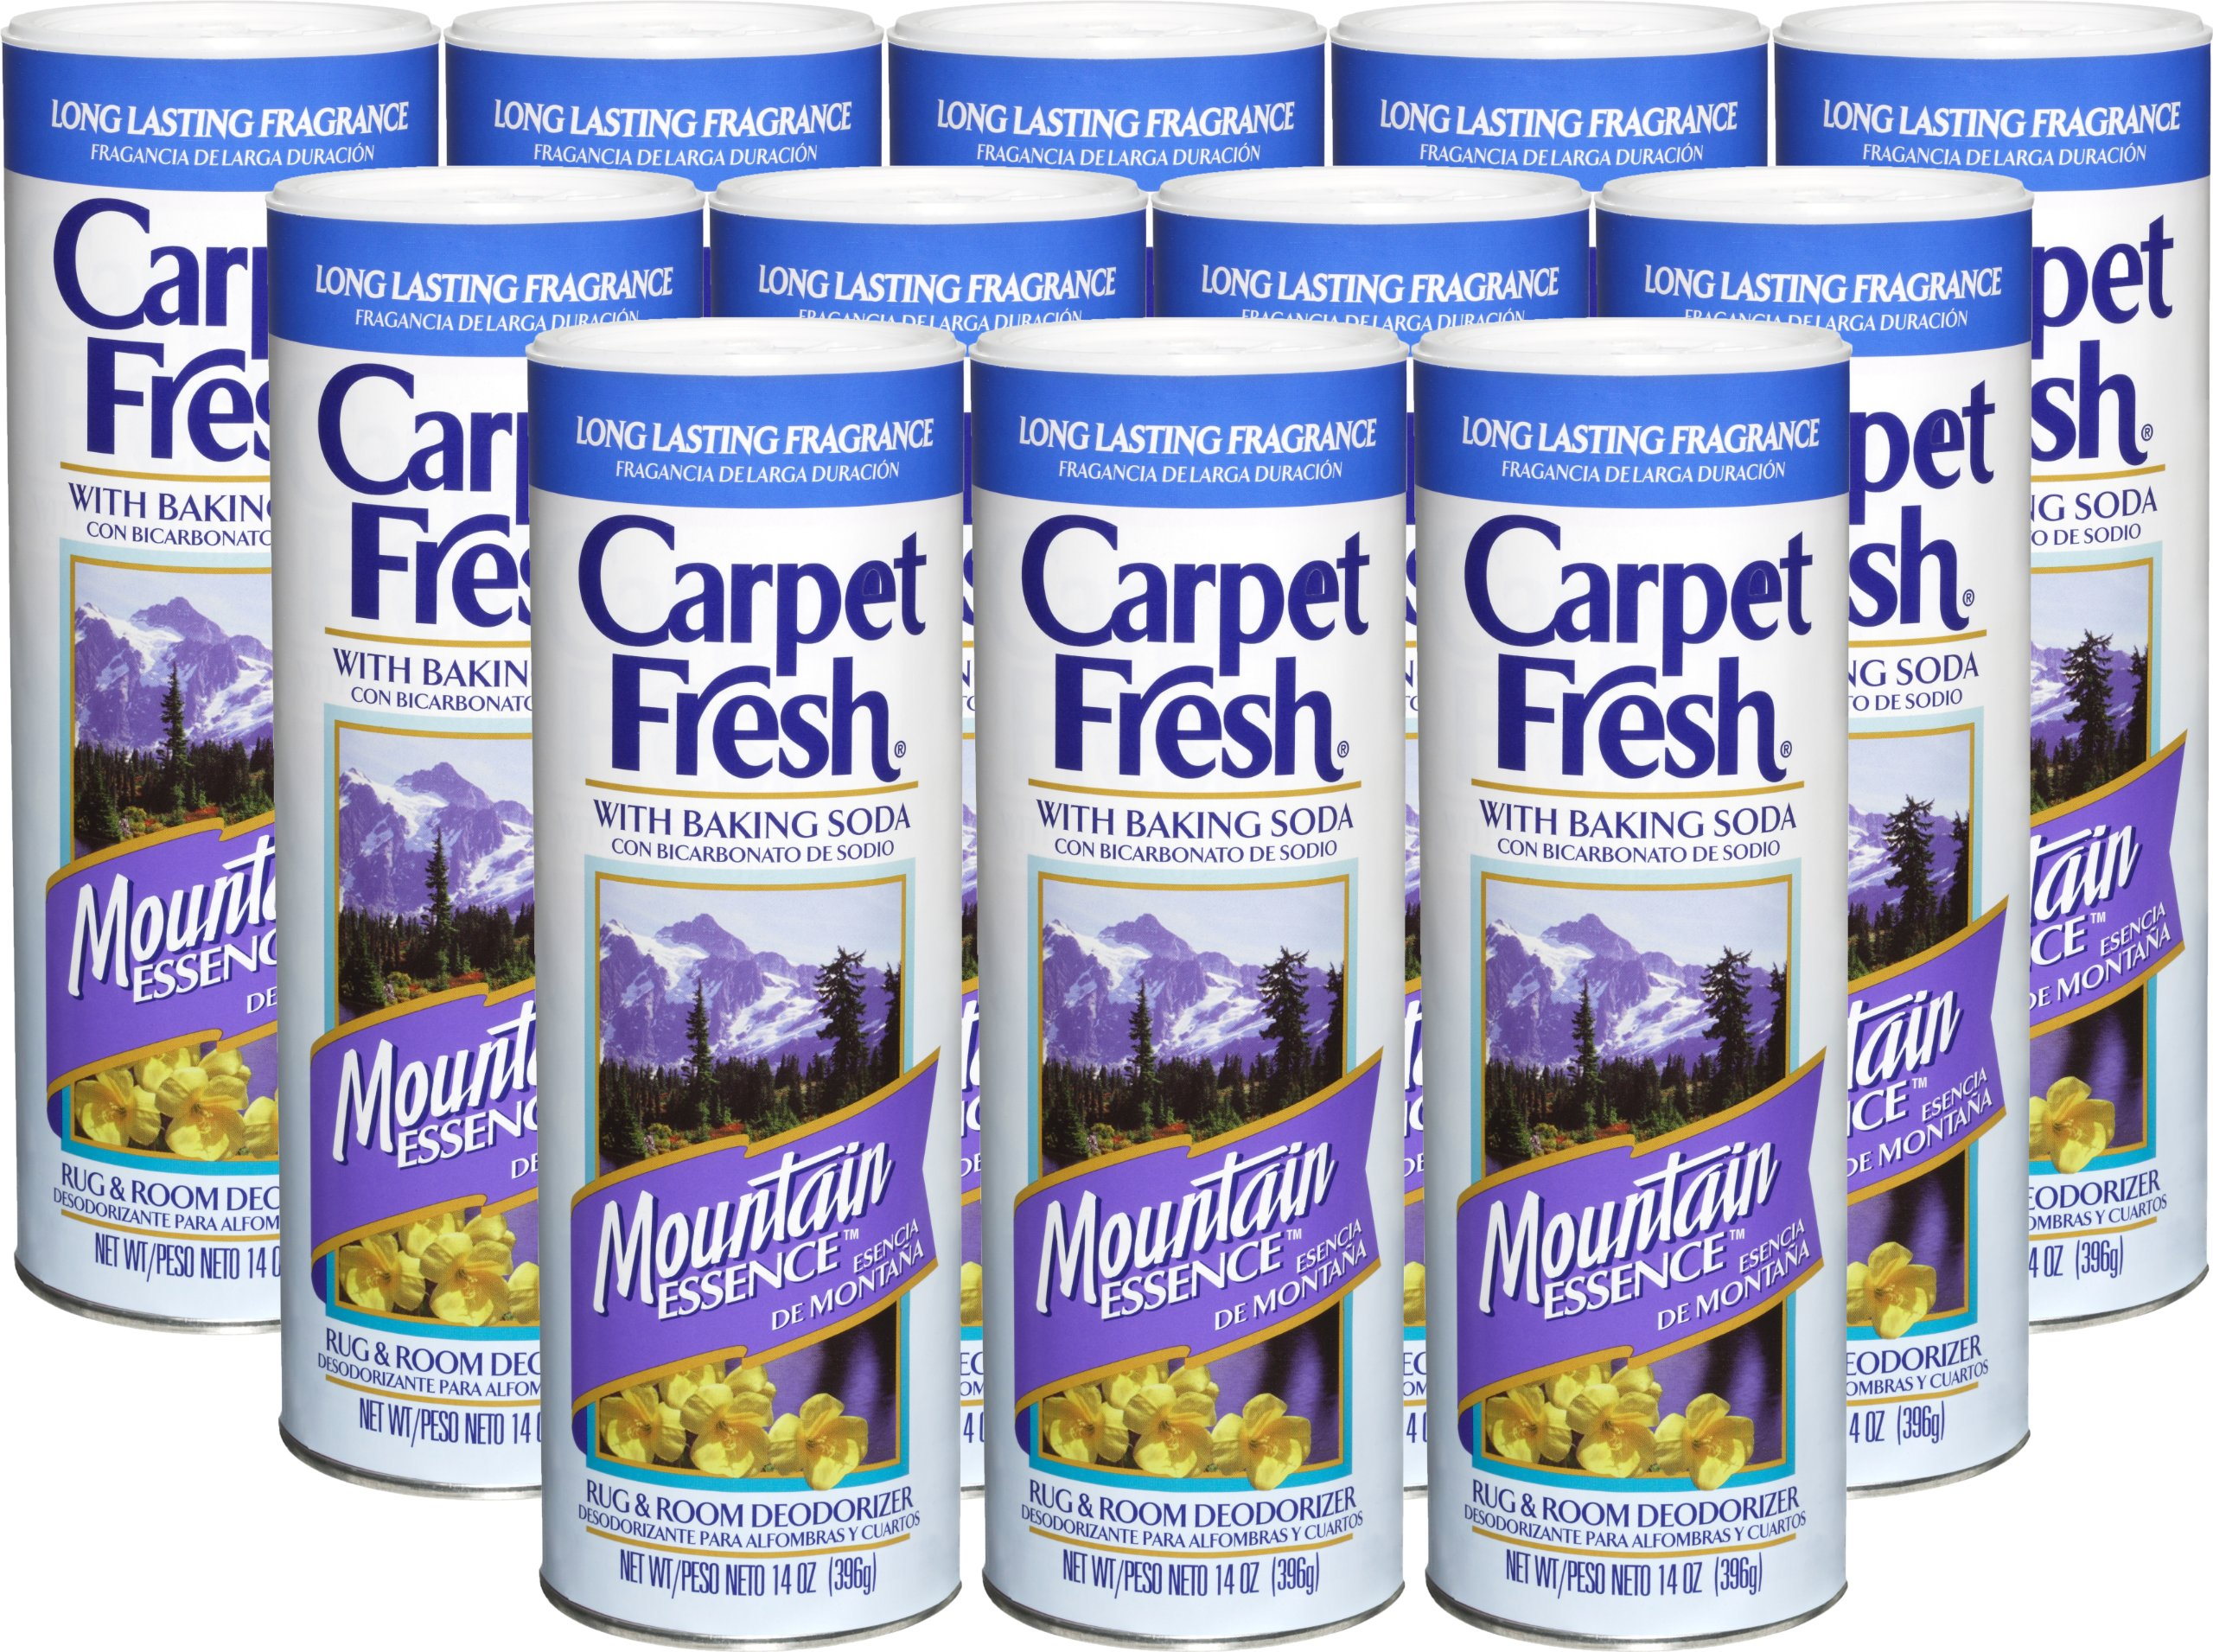 Carpet Fresh Rug and Room Deodorizer with Baking Soda, Mountain Essence Fragrance, 14 OZ [12-Pack] by Carpet Fresh